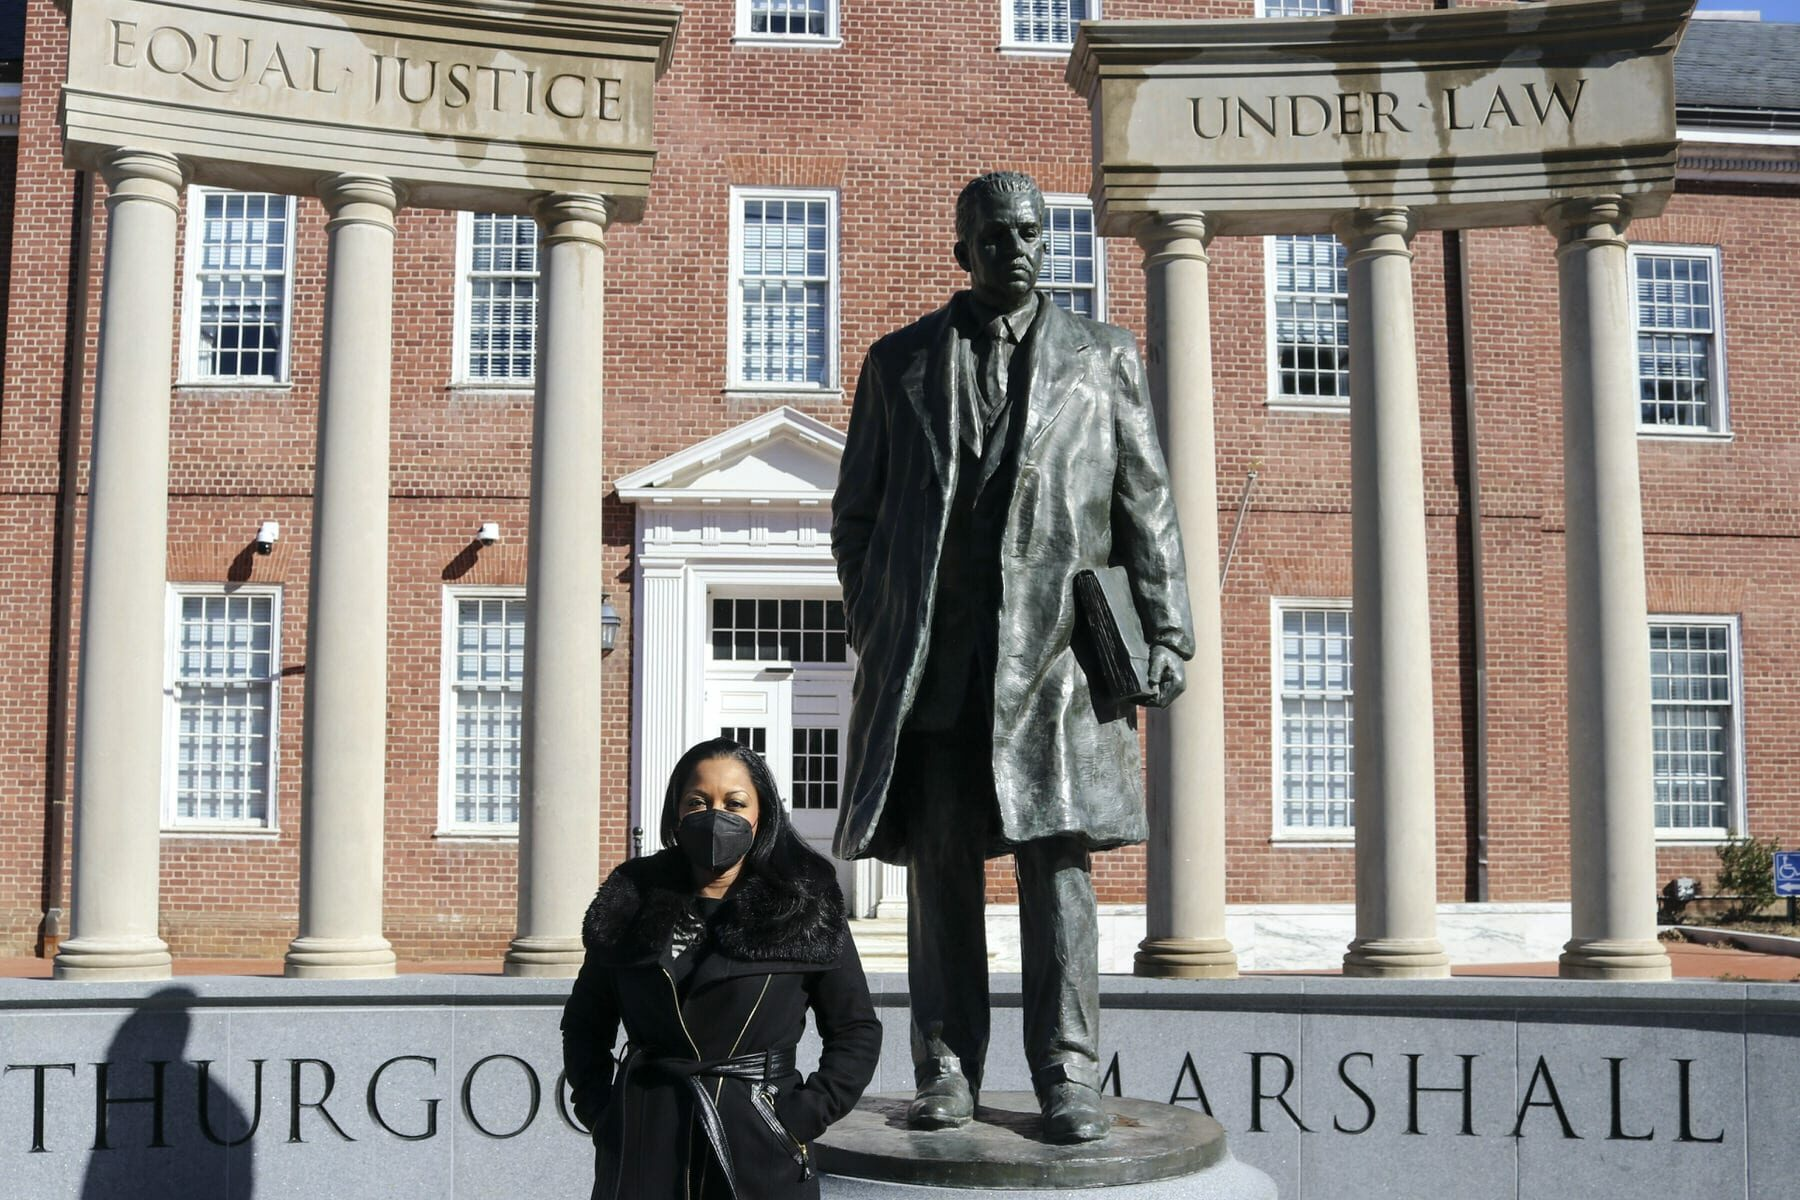 Maryland Del. Vanessa Atterbeary stands in front of a statue of Thurgood Marshall.